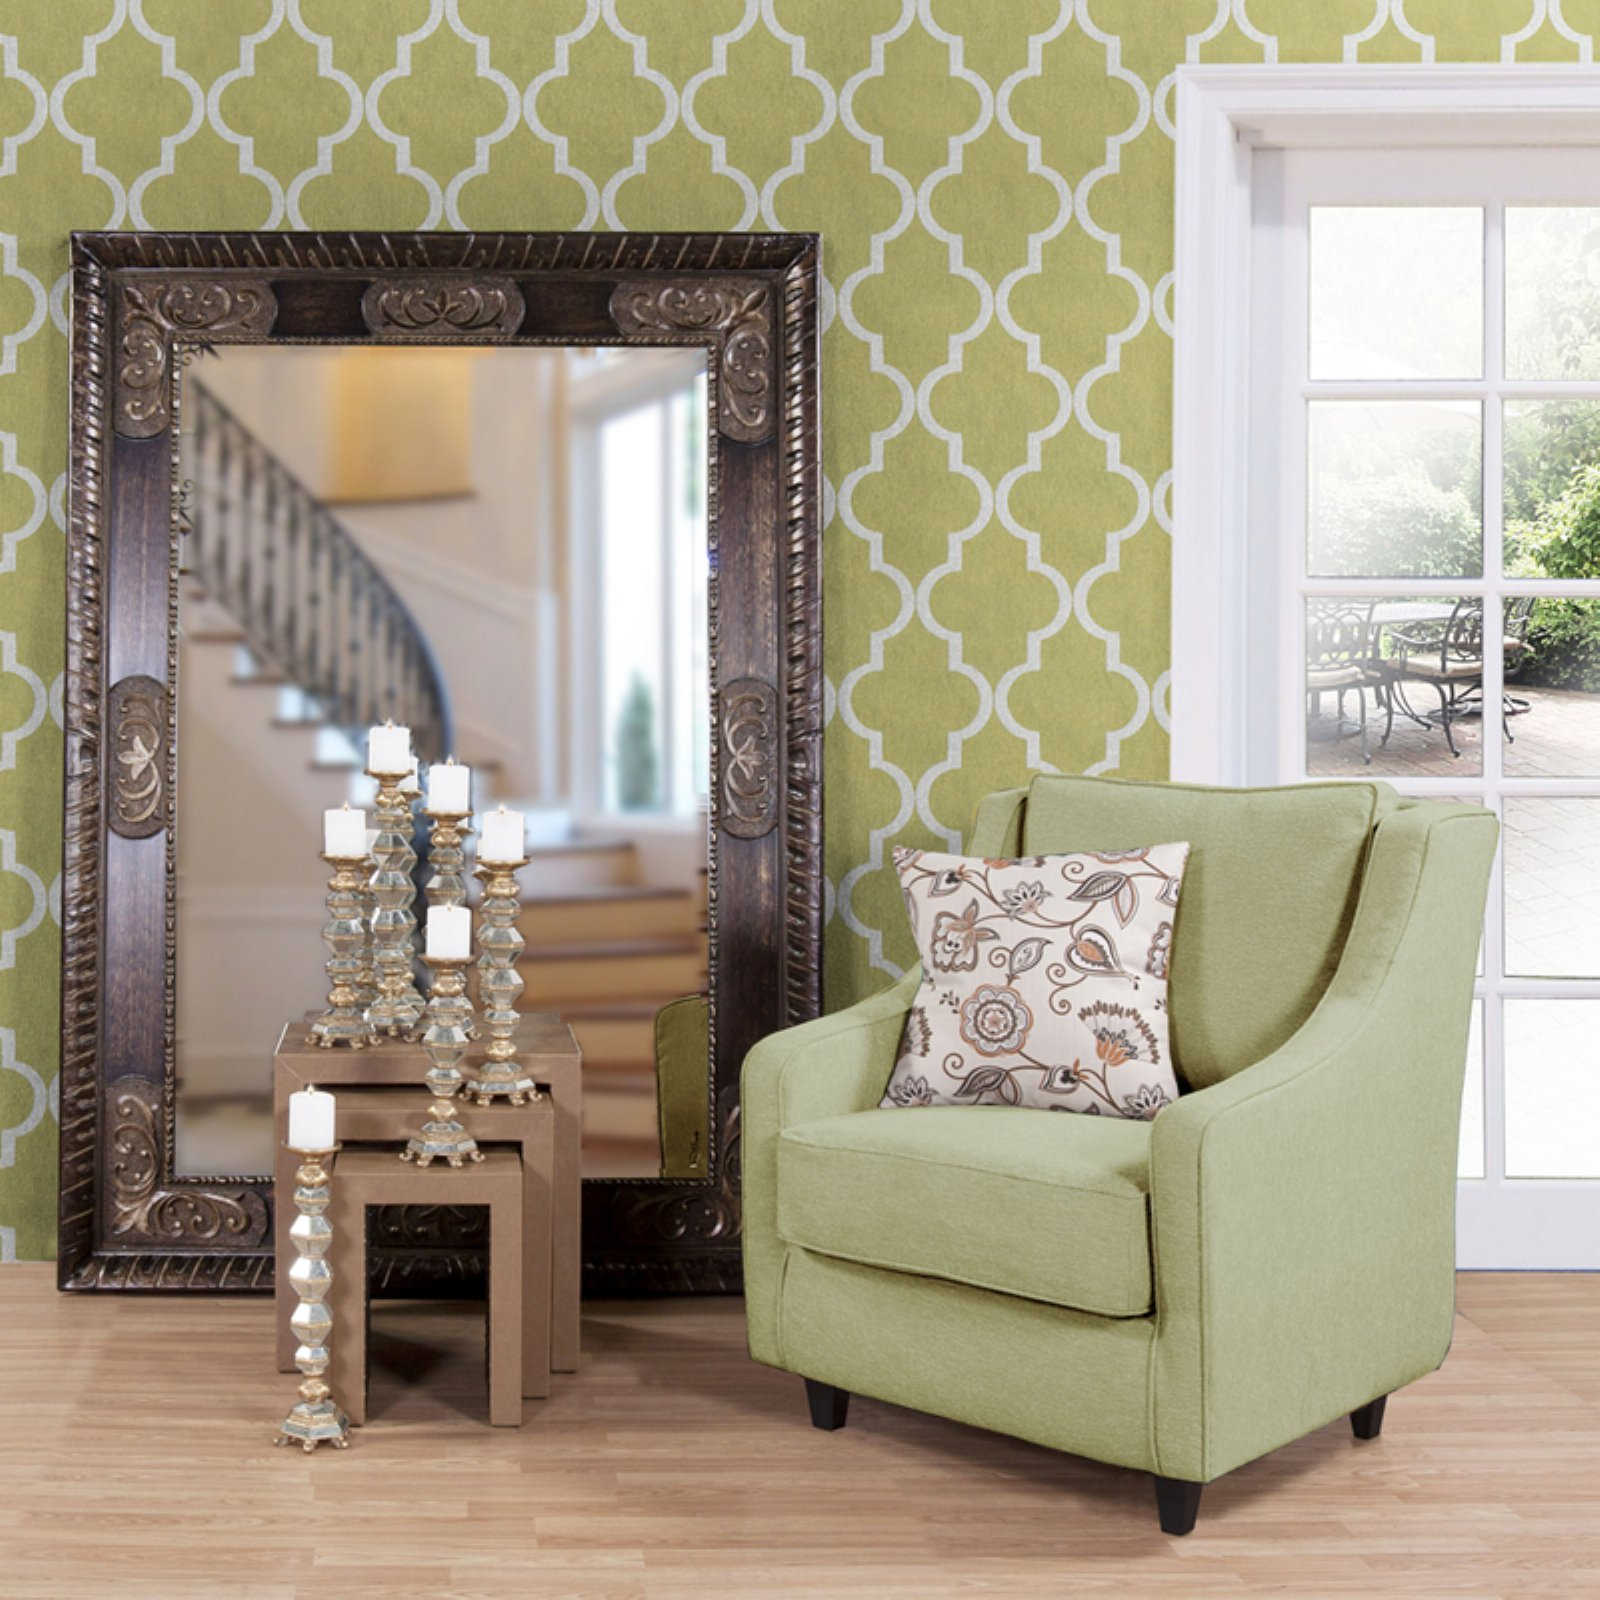 Belham Living Tate Oversized Mirror 60W x 84H in. by Howard Elliott Collection